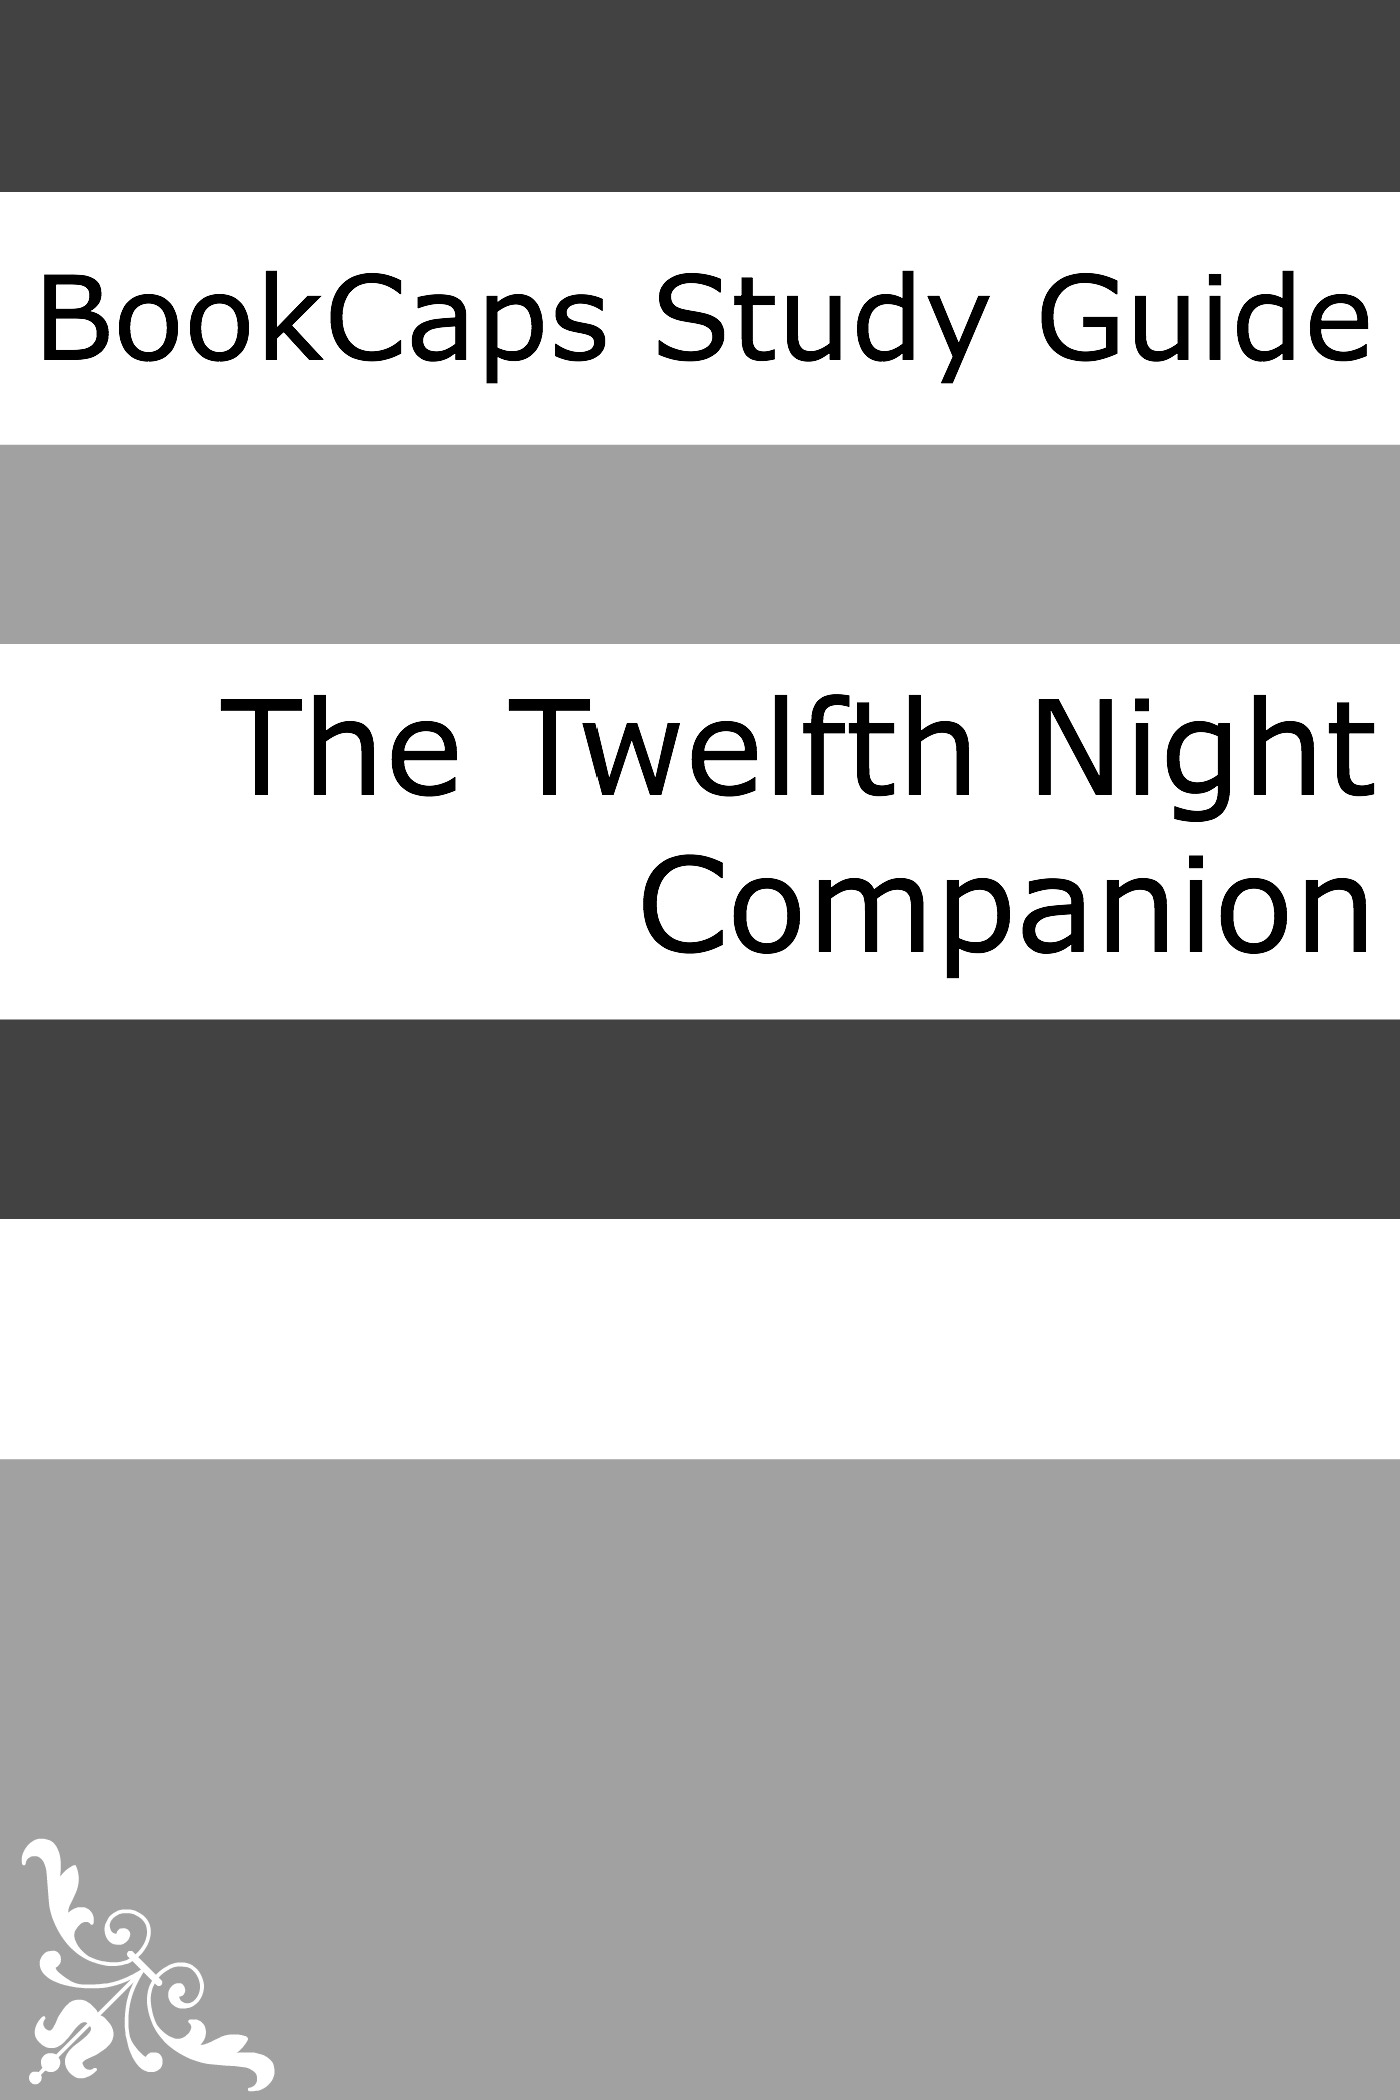 Twelfth Night Companion (Includes Study Guide, Historical Context, Biography, and Character Index)